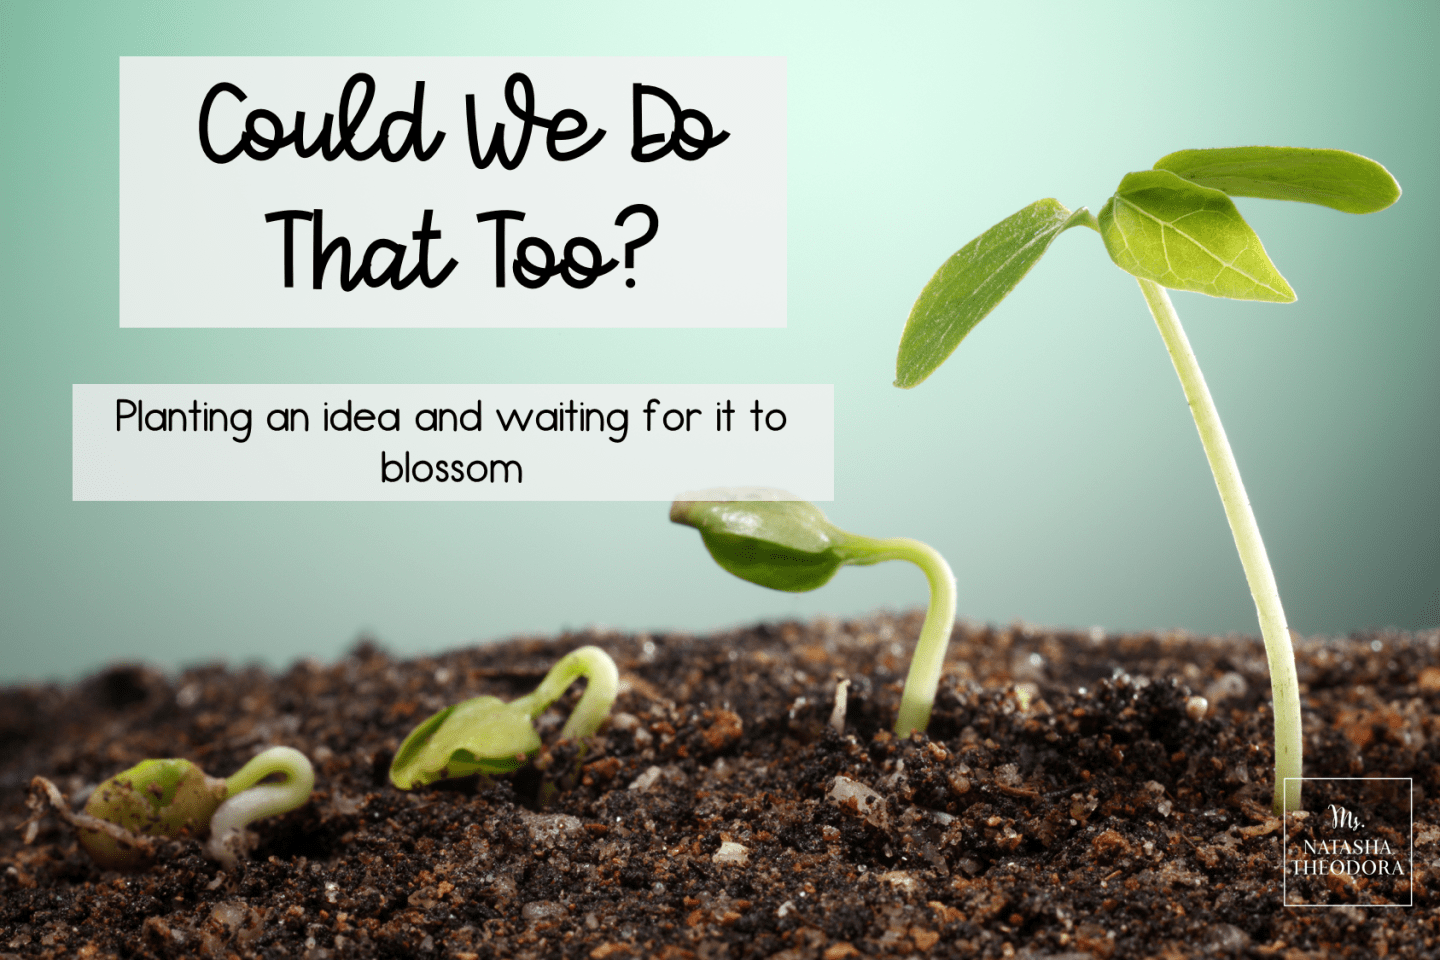 Could We Do That Too? Planting an Idea and Waiting For it to Blossom